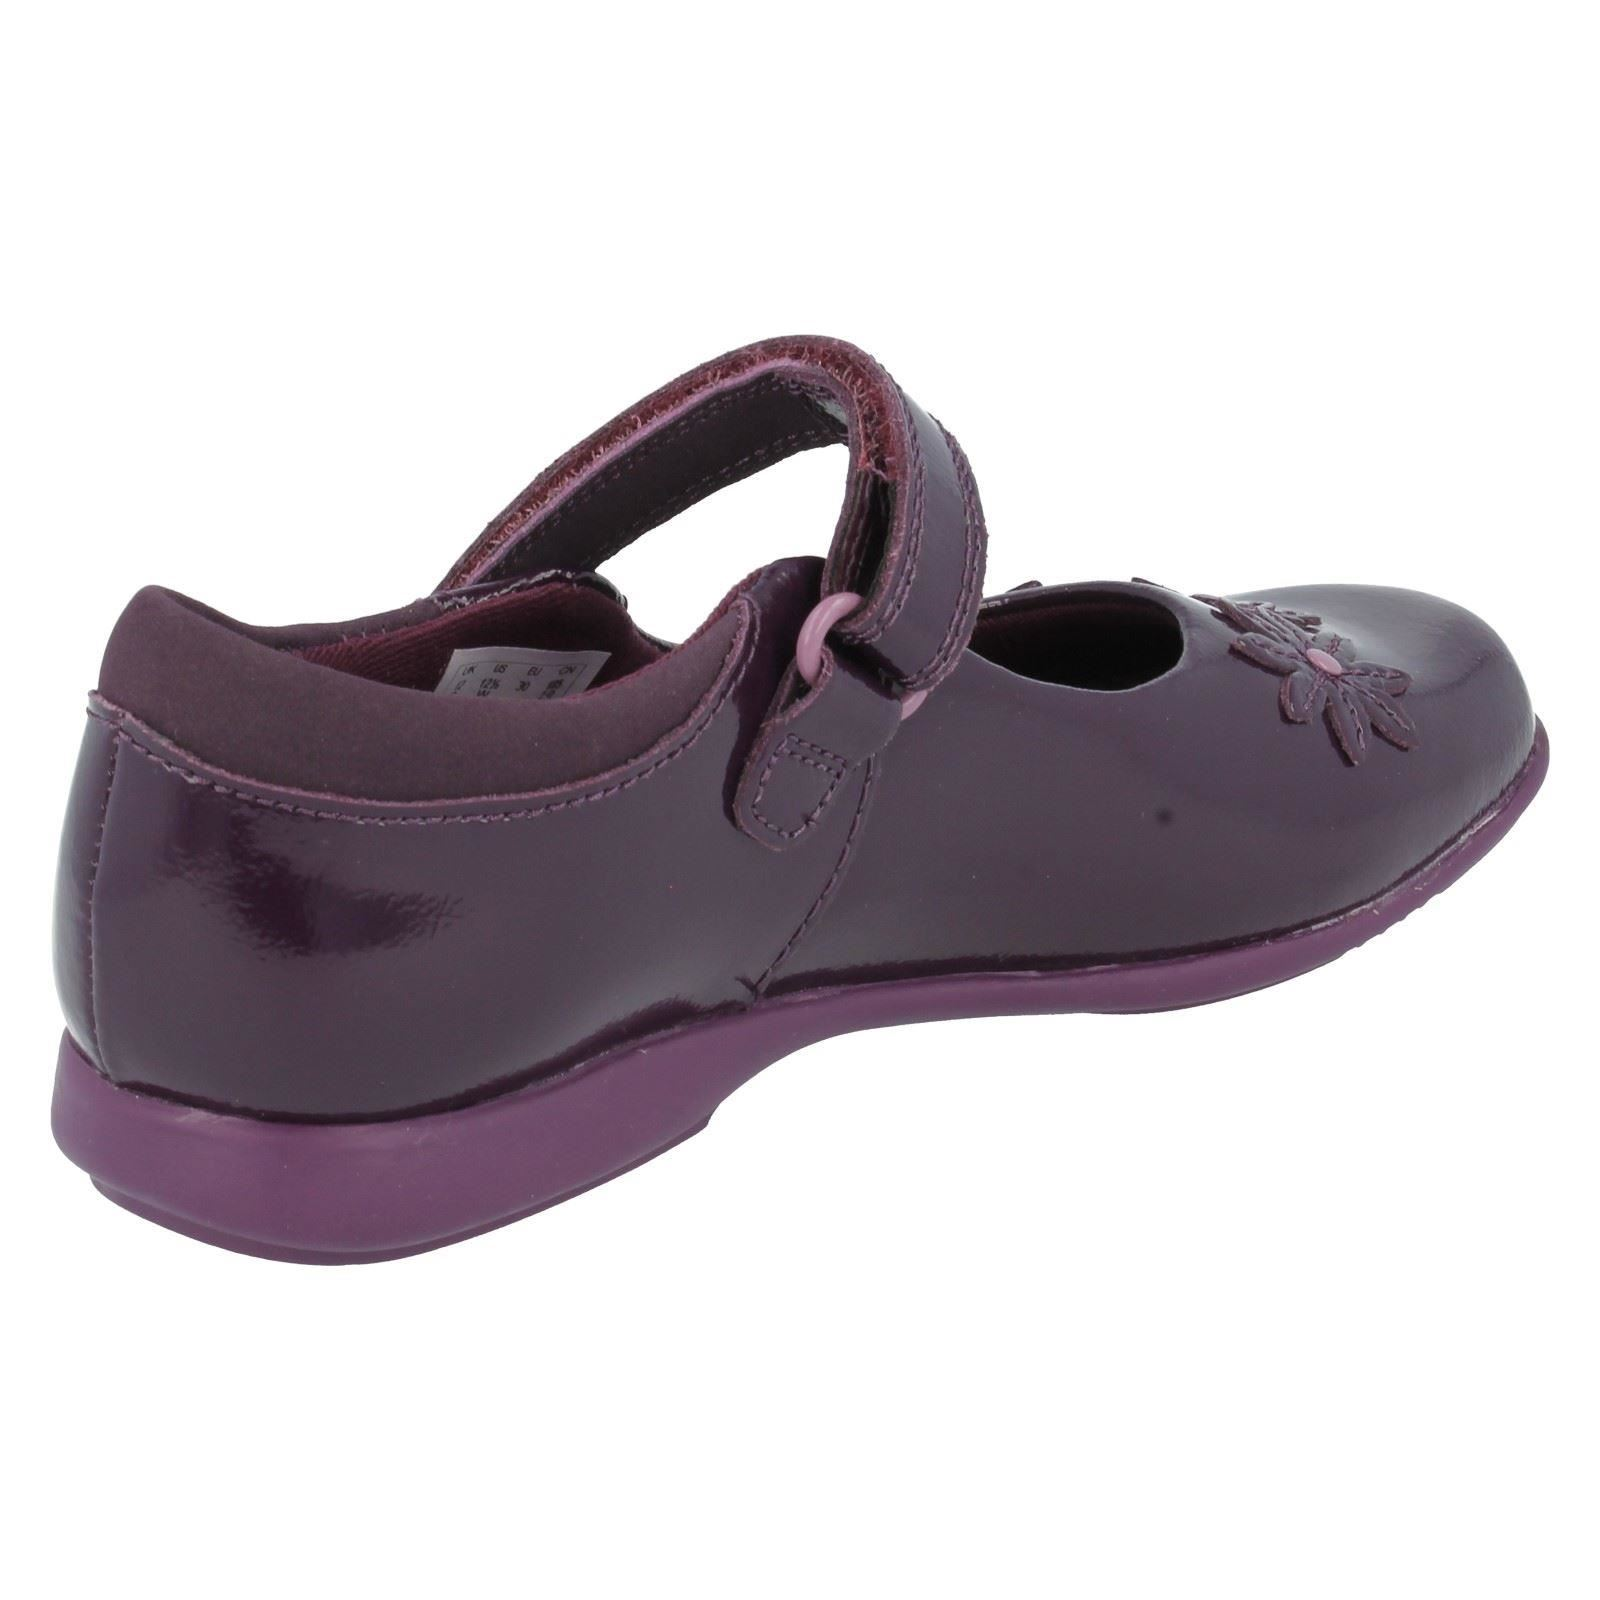 Girls Clarks Shoes Trixi Beth